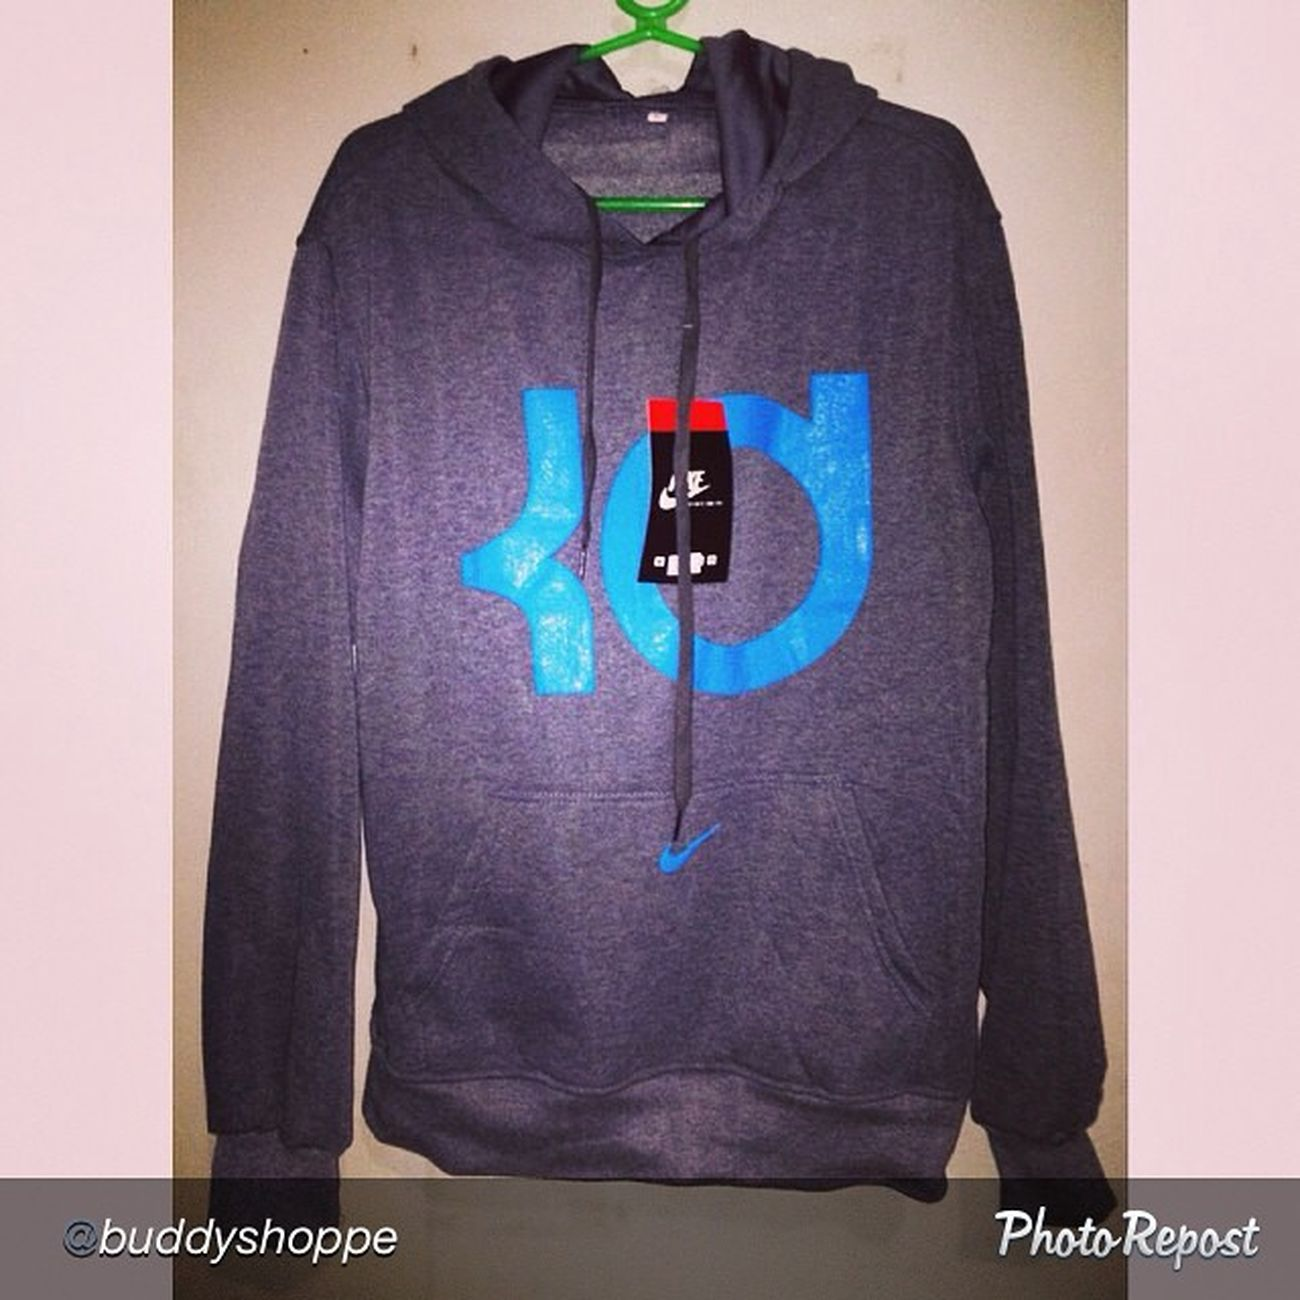 "by @buddyshoppe ""KD nike hoddie Hoodie KD Nike Kdnike hoodies lookingfor buy onlineshop buddyshoppe How to order/purchase: NO ORDER FORM NO TRANSACTION! 1. If you are 100% sure about buying the item please fill up all the necessary information below: **ORDER FORM** Complete Name: Shipping Address: Instagram Account: Facebook Account: Contact Number: Preffered Mode of Payment: Order: 2. Send all the details to our VIBER account: +639266775516. We will reply the payment details. Upon sending the order form it is already considered as sold. NO CANCELLATION OF ORDERS. 3. Settle the payment. Send deposit slip/tracking number. Once payment is verified we will ship the items to you. SMS/VIBER: +639266775516 (NO CALLS) FACEBOOK: theBUDDY Shoppe MODE OF PAYMENT: Bank deposit (BPI) 